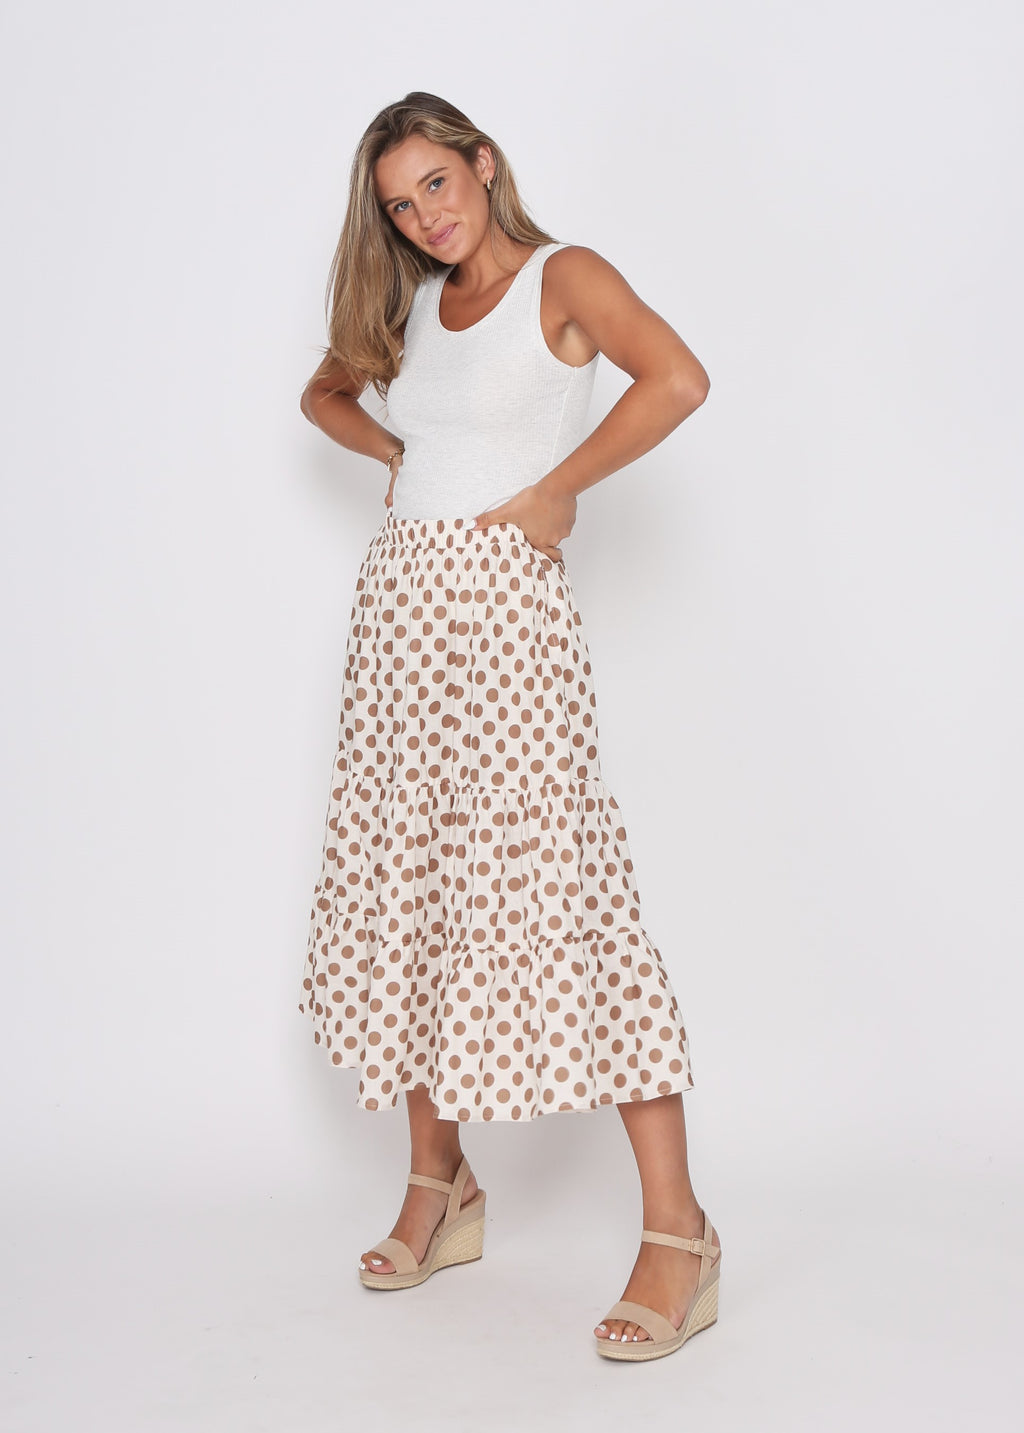 NEW - EDEN SKIRT - TAN COMBO